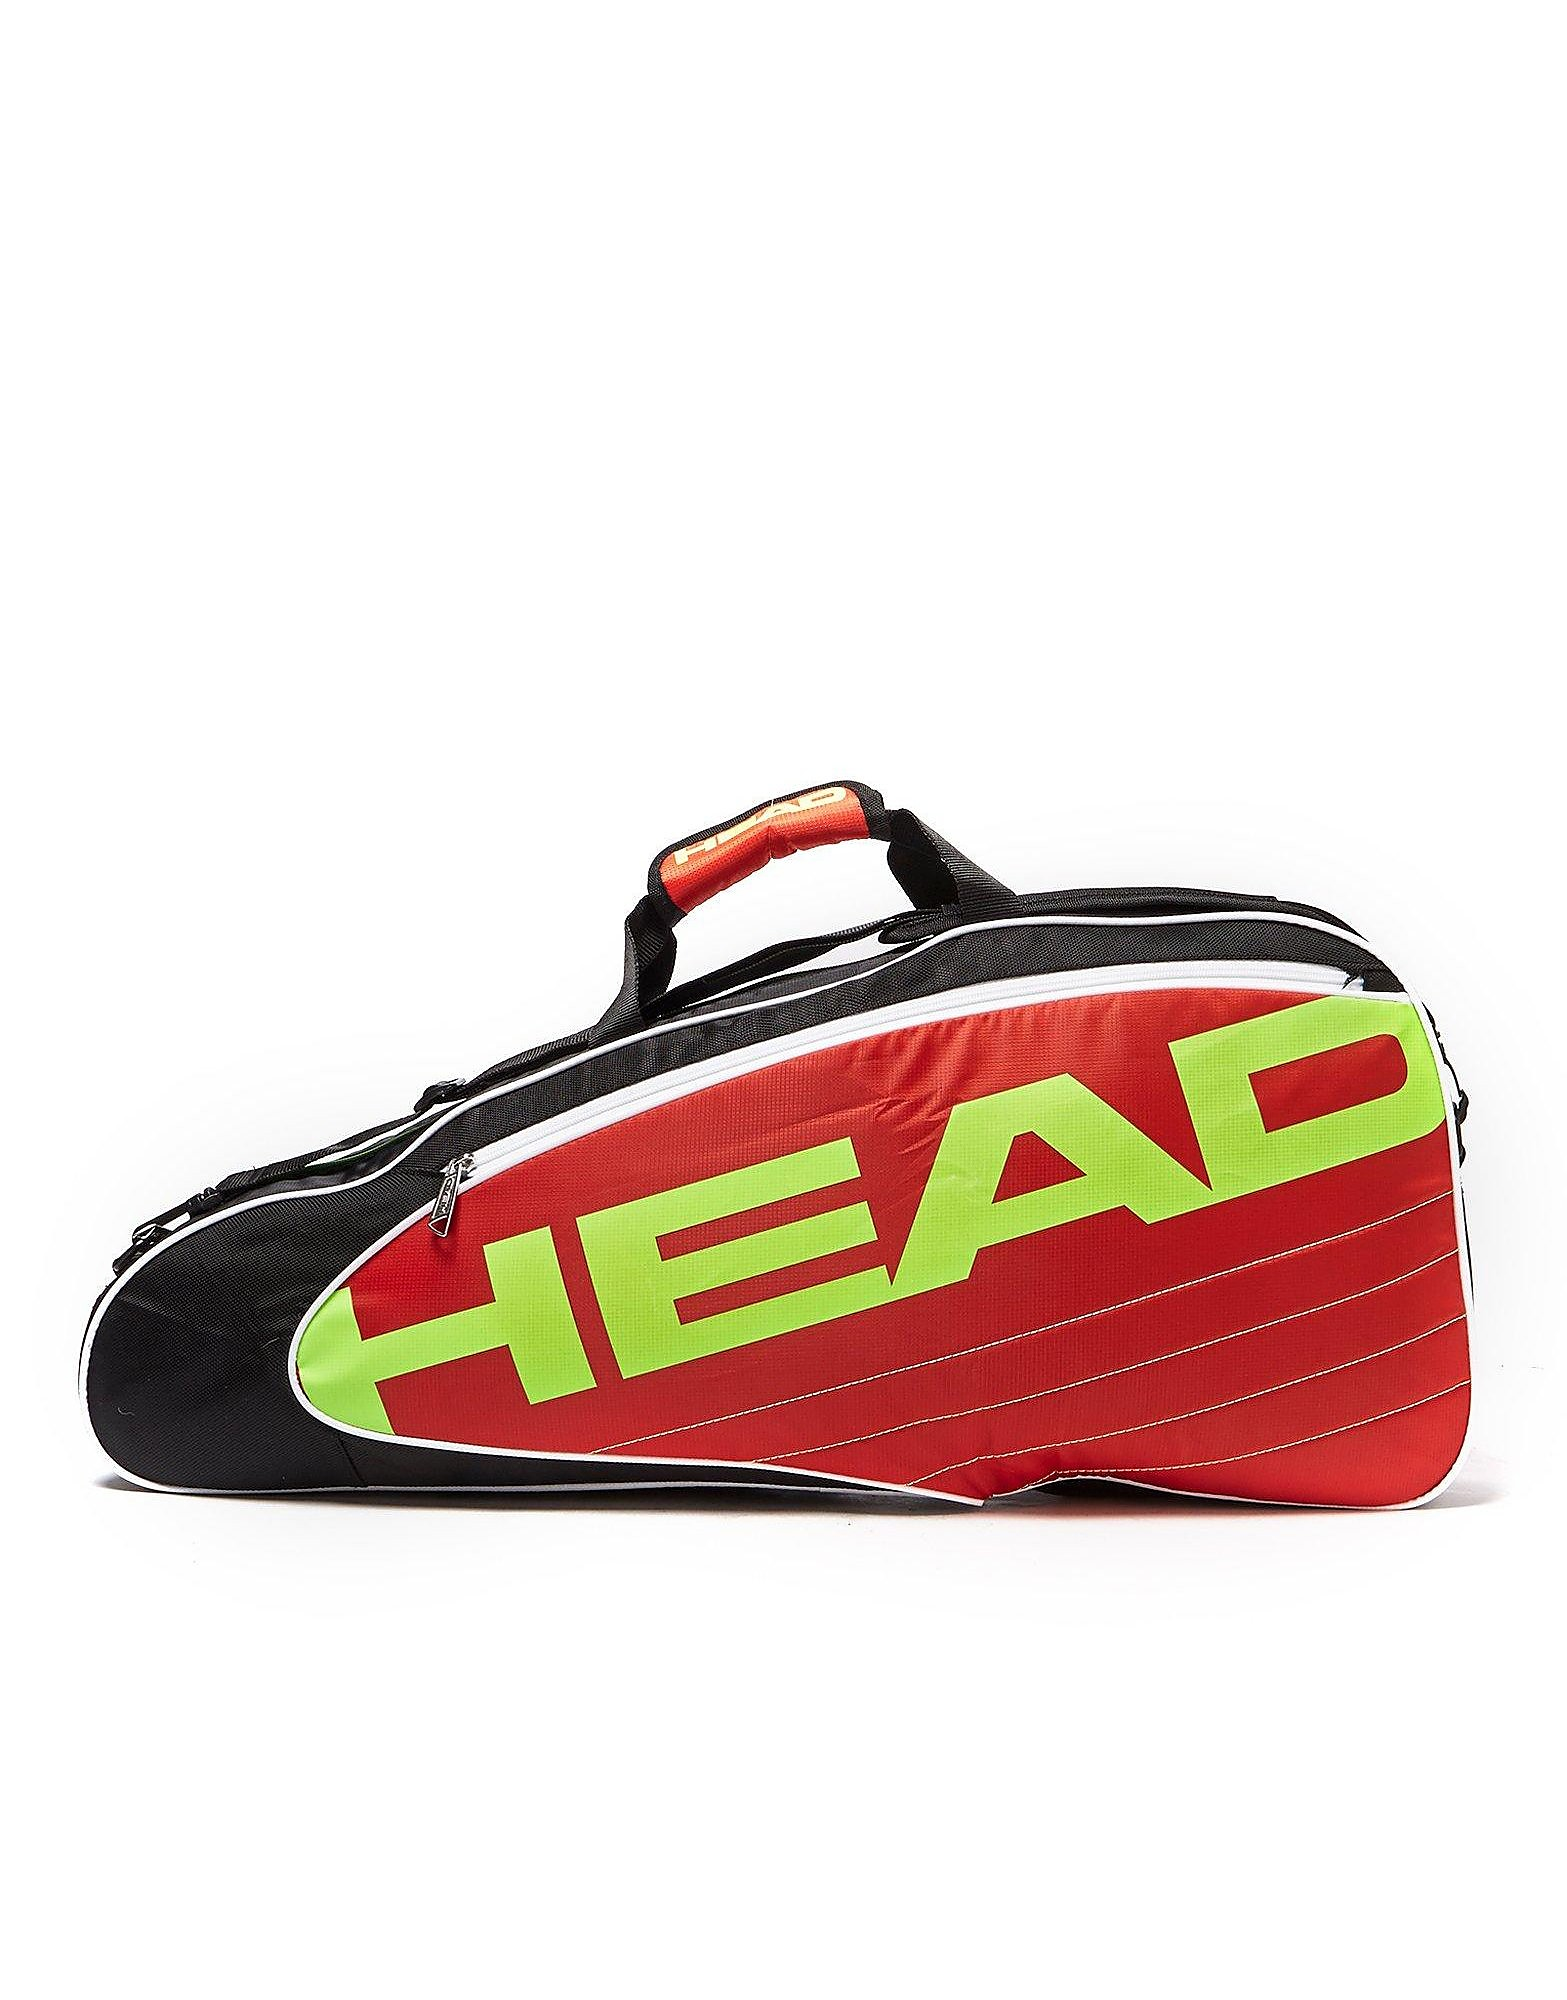 Head Elite Pro Racket Bag